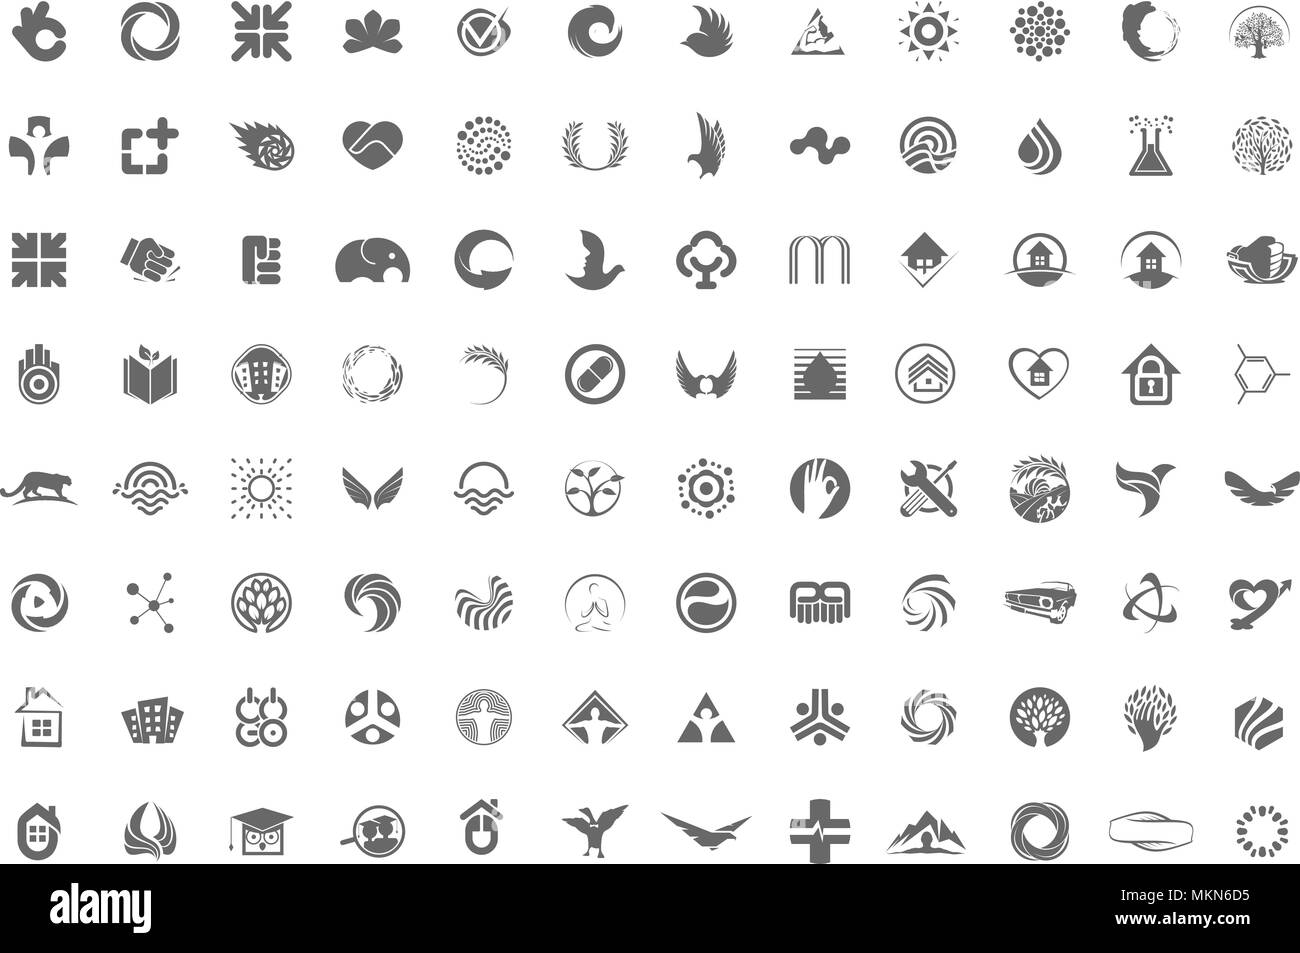 A huge collection of trendy, unusual symbols, icons or logos in one collection on a white background. Minimalist vector design elements signs. - Stock Vector